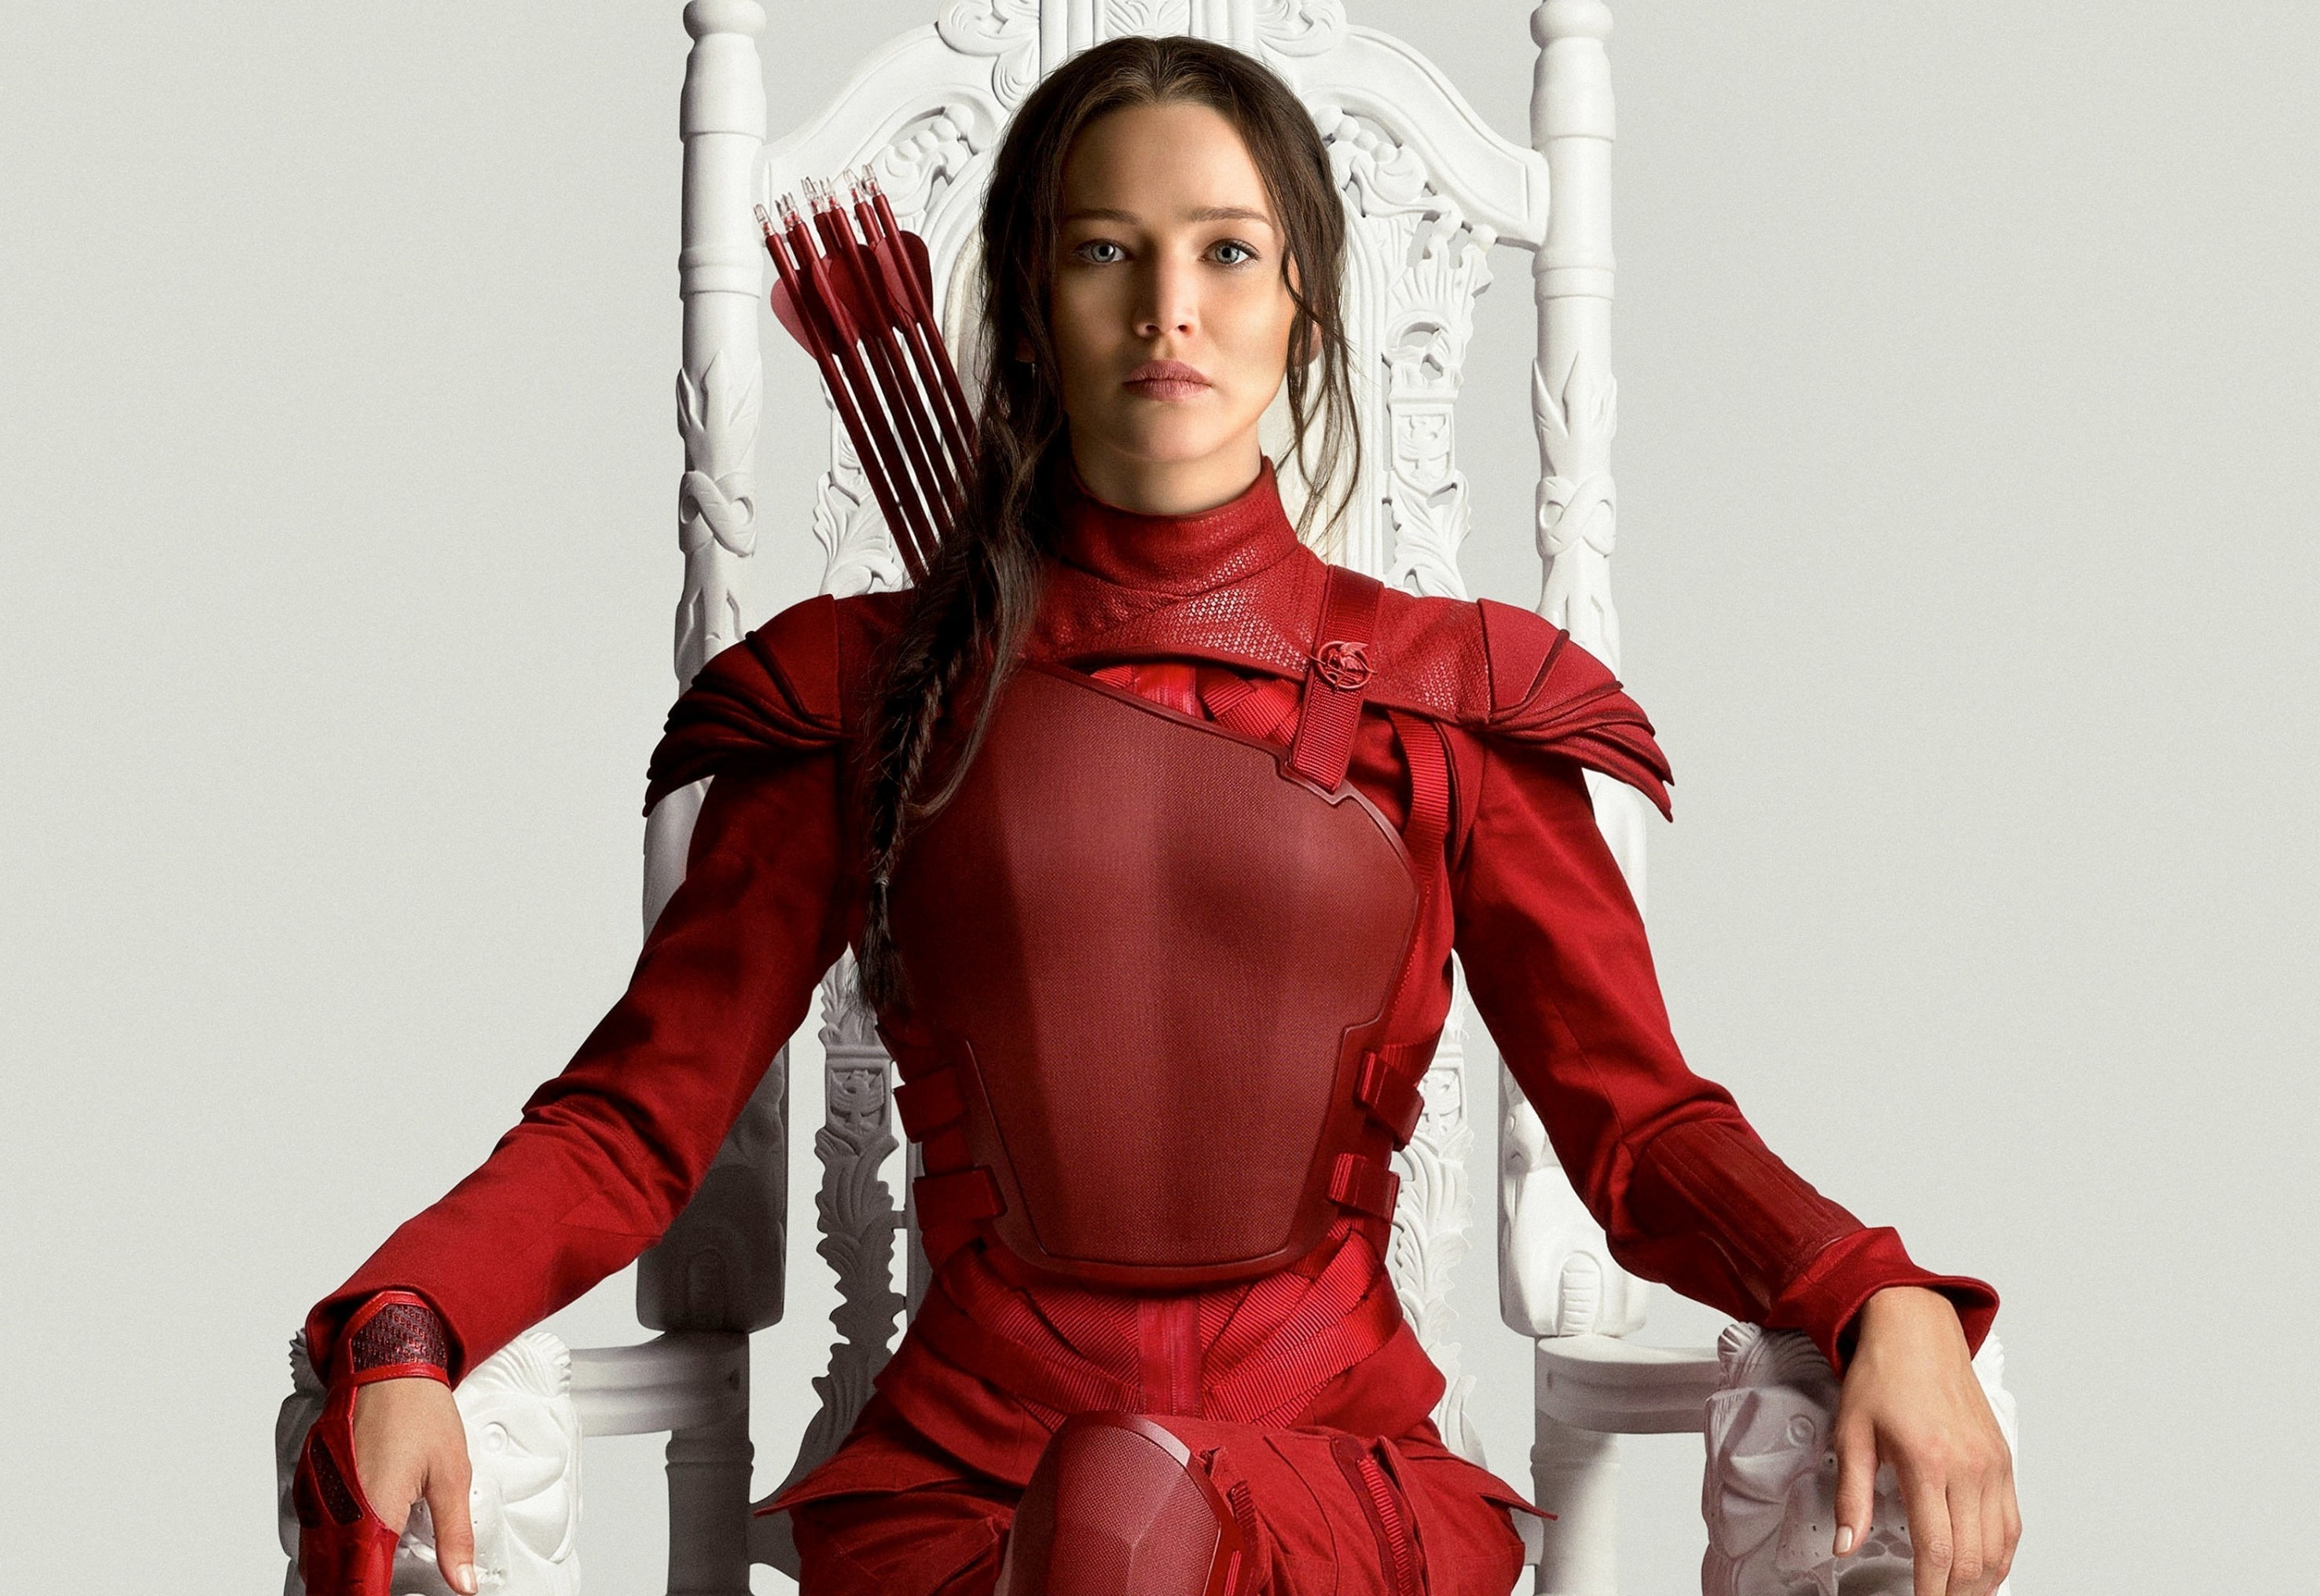 2952x2031 The Hunger Games Mockingjay Part 2, Jennifer Lawrence, Red Clothes